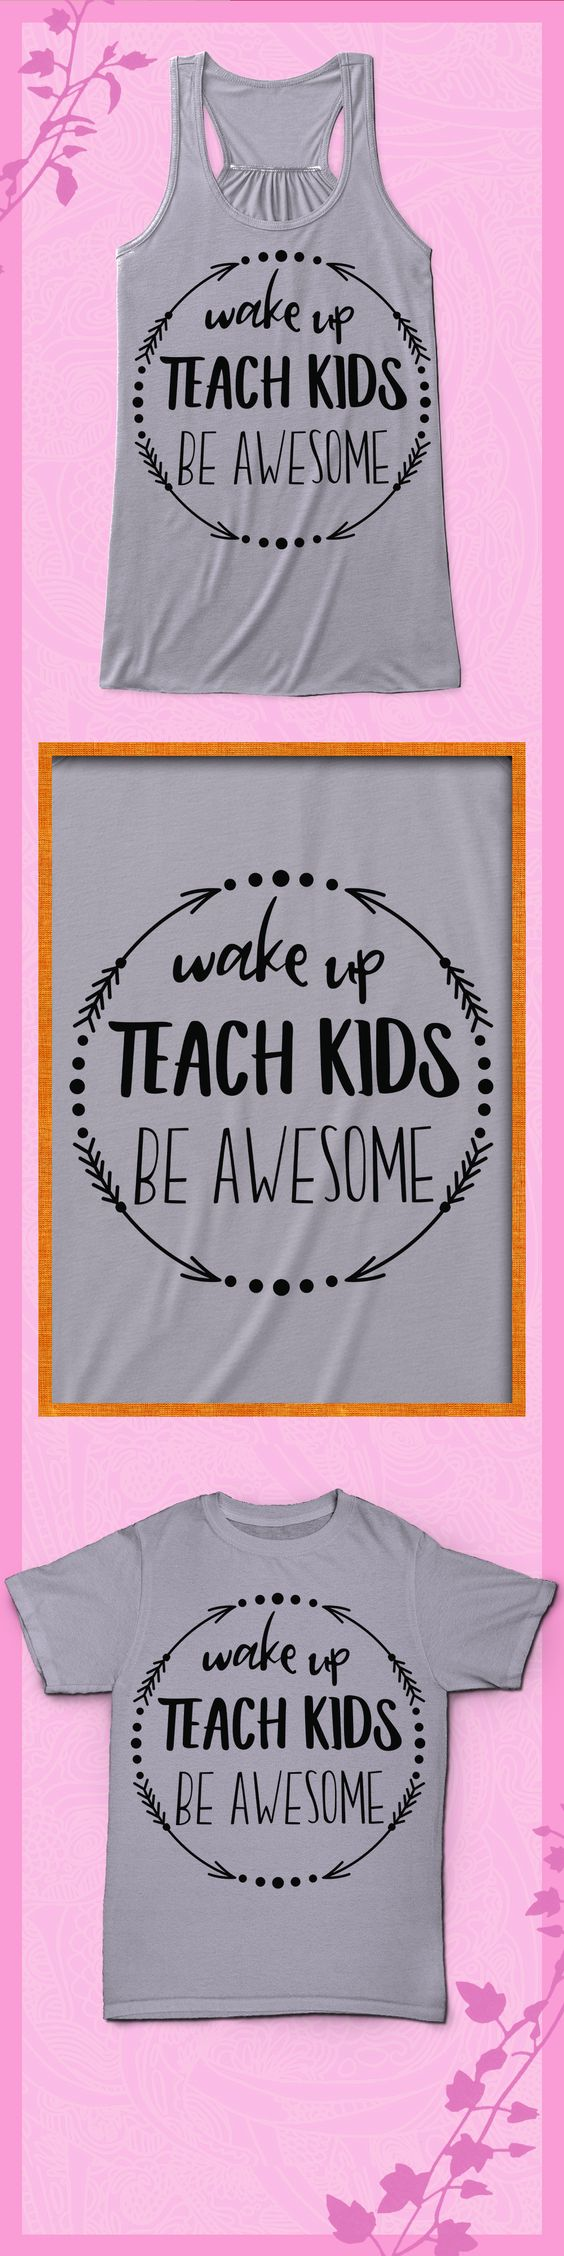 best images about kid pres on pinterest